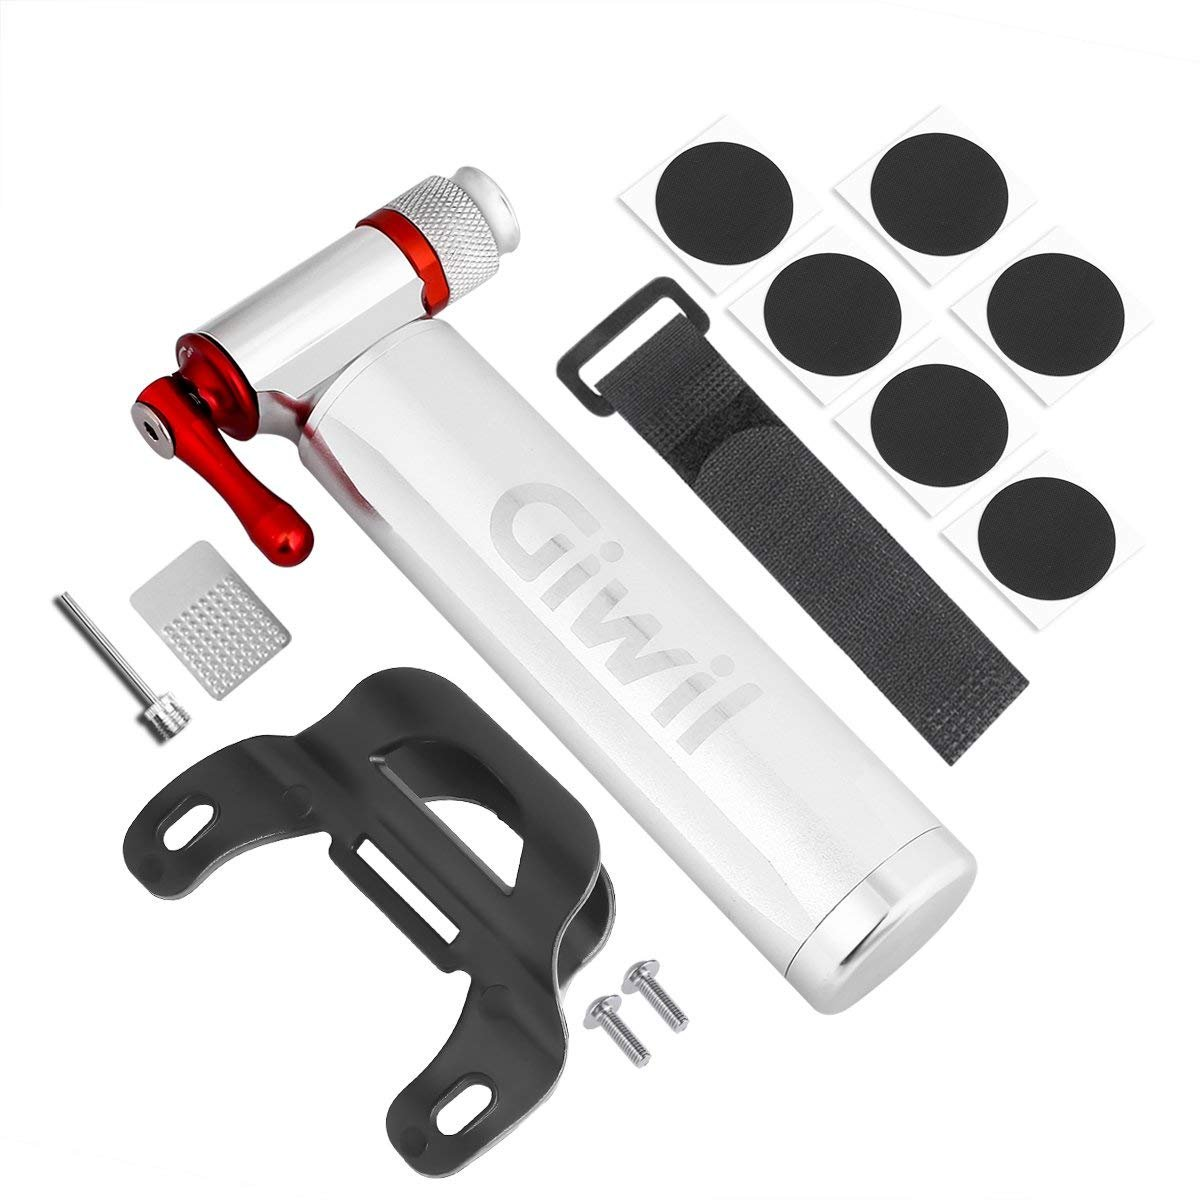 Giwil CO2 Inflator with Glueless Puncture Kit - Fits Presta and Schrader Valve, Quick & Easy, Bicycle Tire Pump for Road & Mountain Bikes, Metal Storage Canister, No CO2 Cartridges Included.